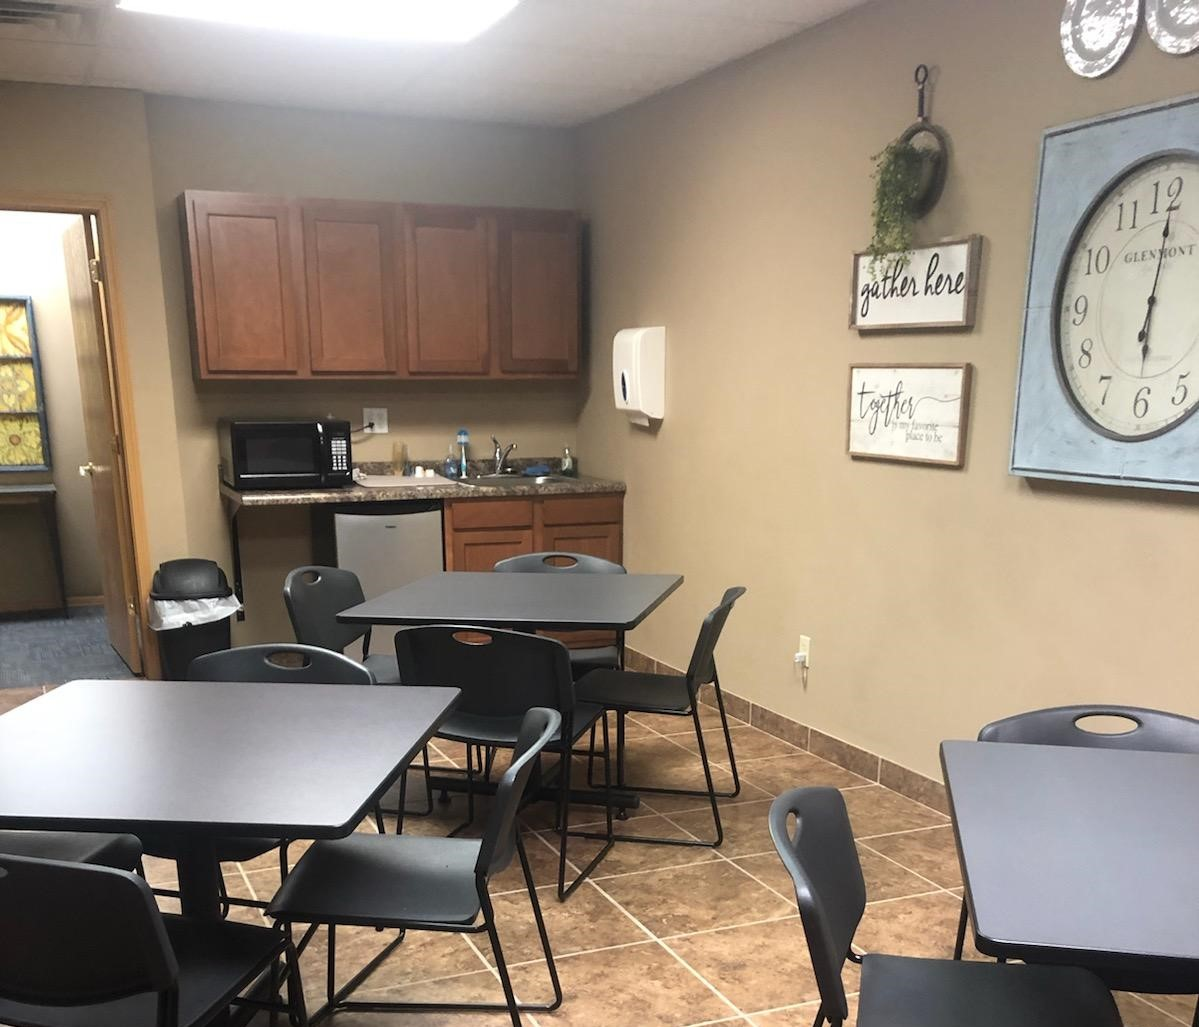 Accessibility - All of our family centers provide access for anyone who may require special accommodations. Each family center has ramp access, accessible ADA compliant restrooms and plenty of space to navigate from one area to the next. Spending time with your family should be your only concern.